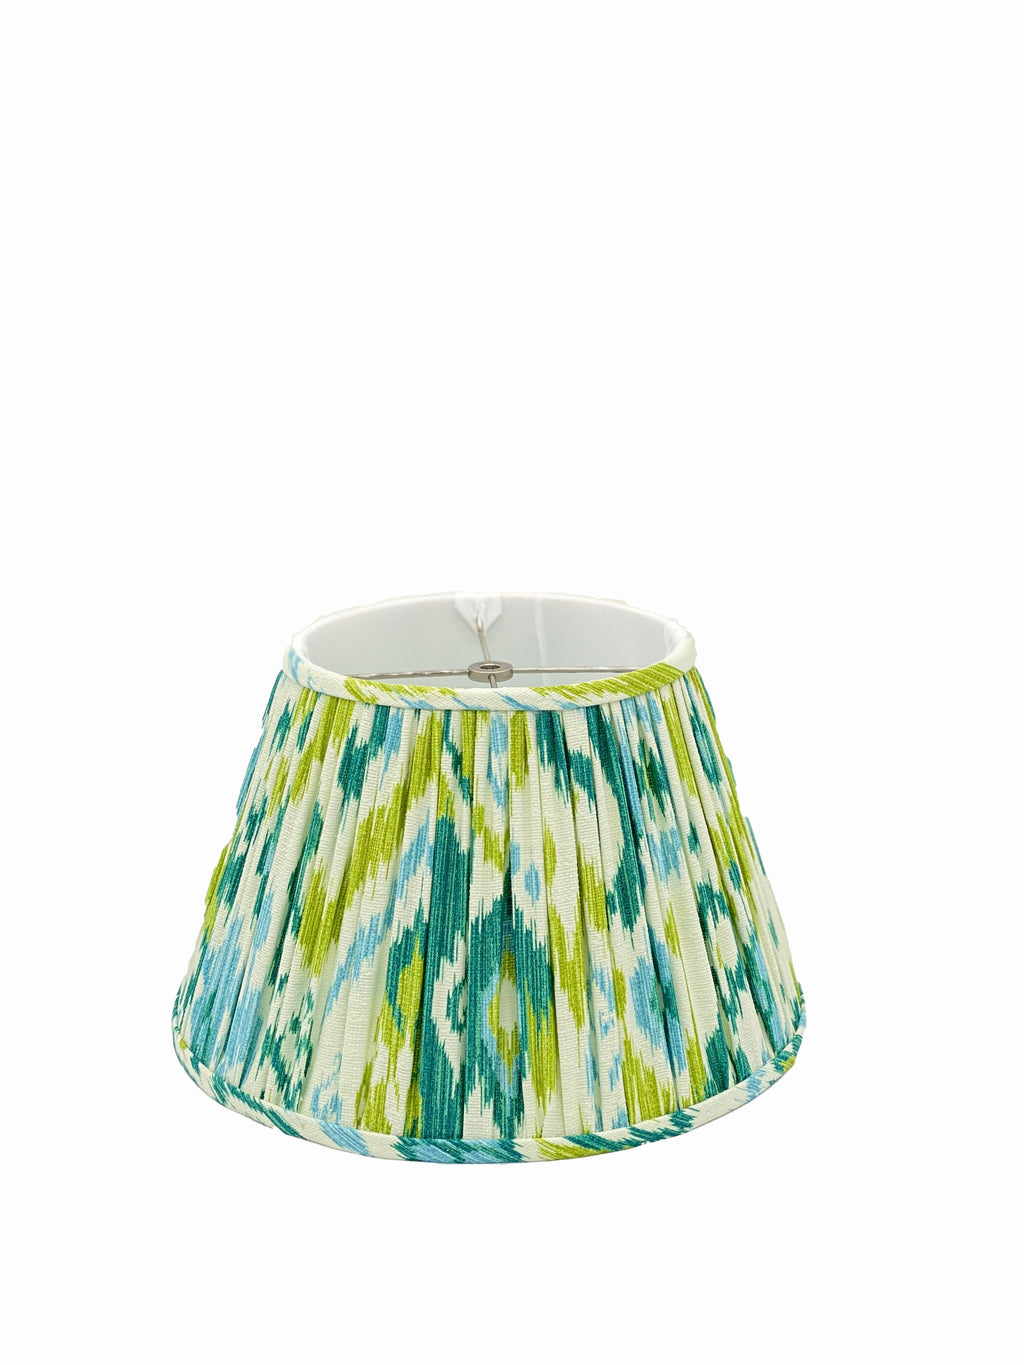 Bespoke Blue/Green/Teal Gathered Empire Lampshade